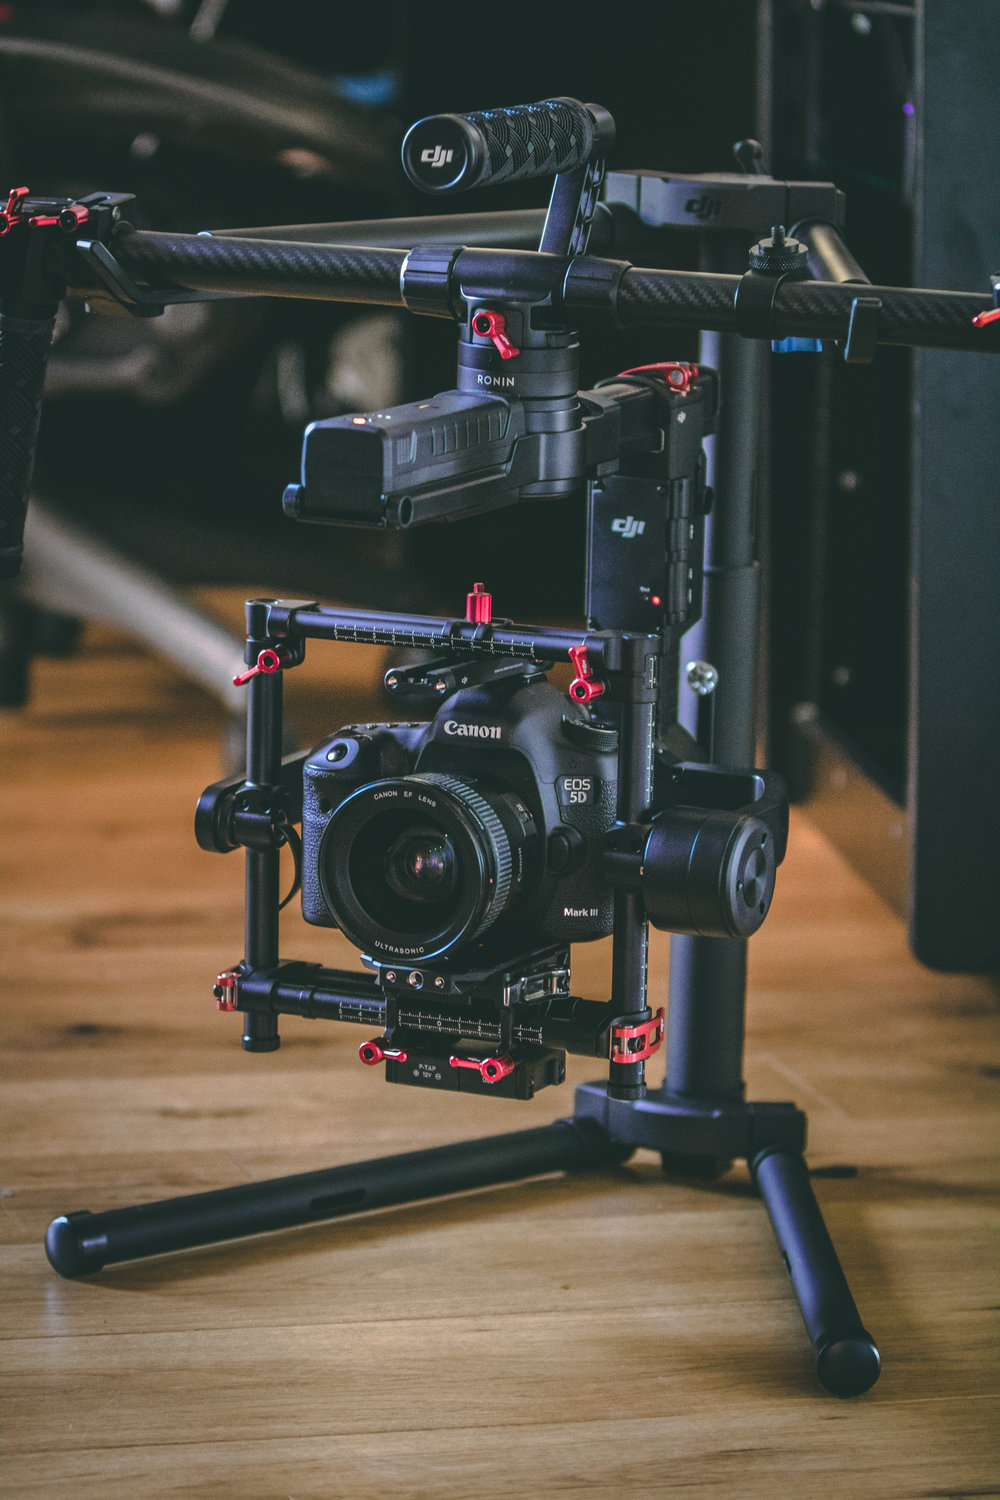 DJI Ronin MX Brushless Gimbal Review